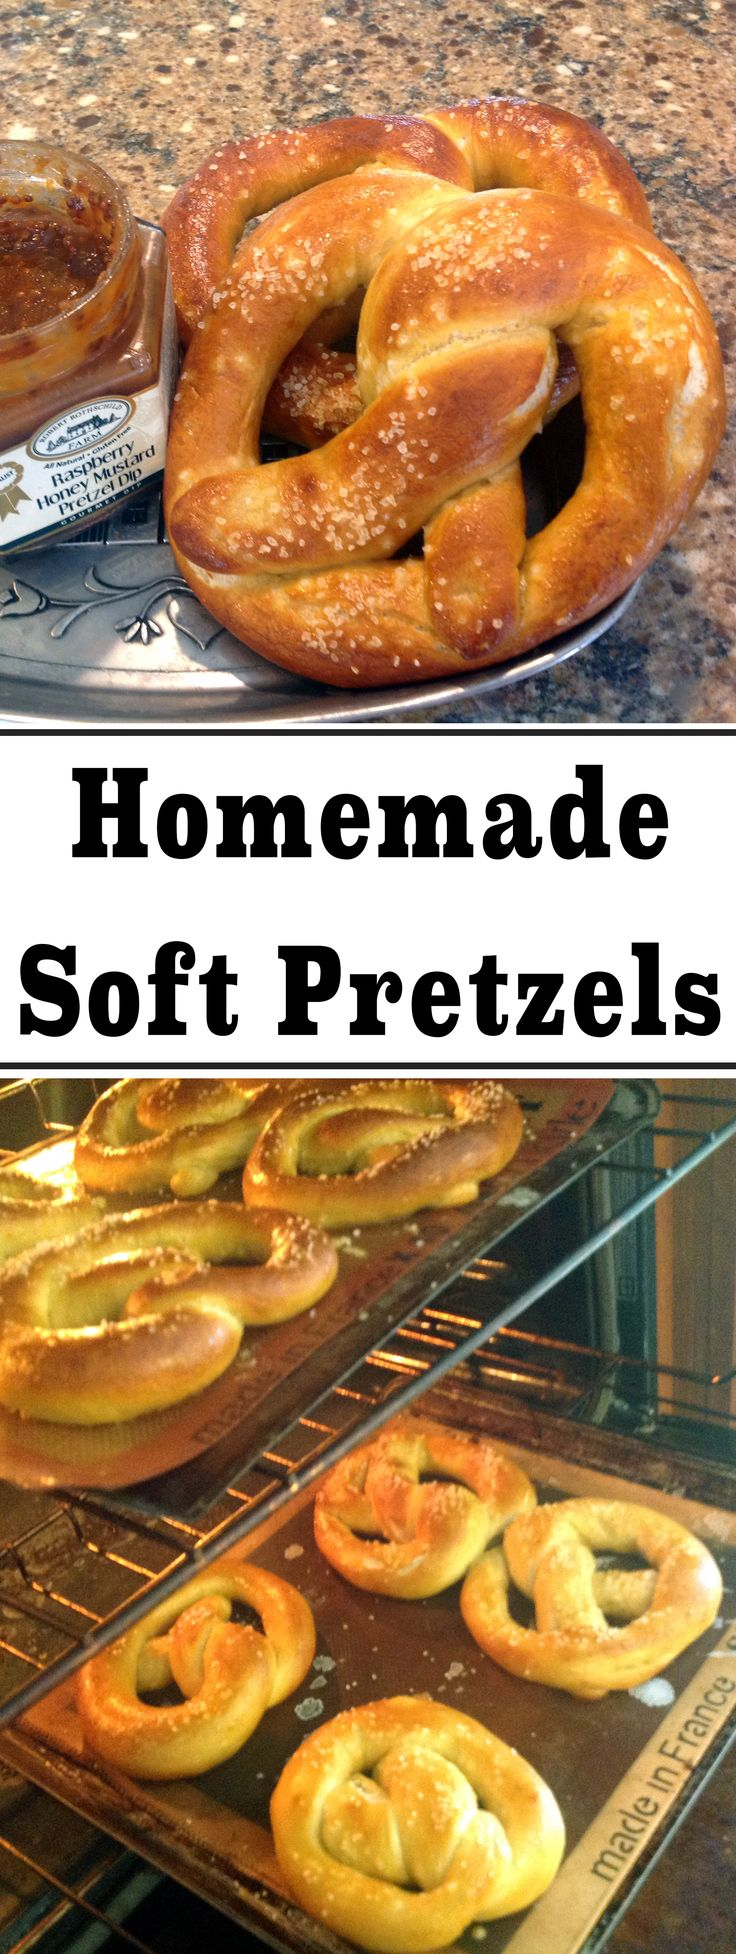 Warm pretzels, fresh from the oven, firm and shiny on the outside, soft and chewy on the inside. Serve them with some mustard and my kids gobble them up after running around outside on a cool, breezy afternoon!